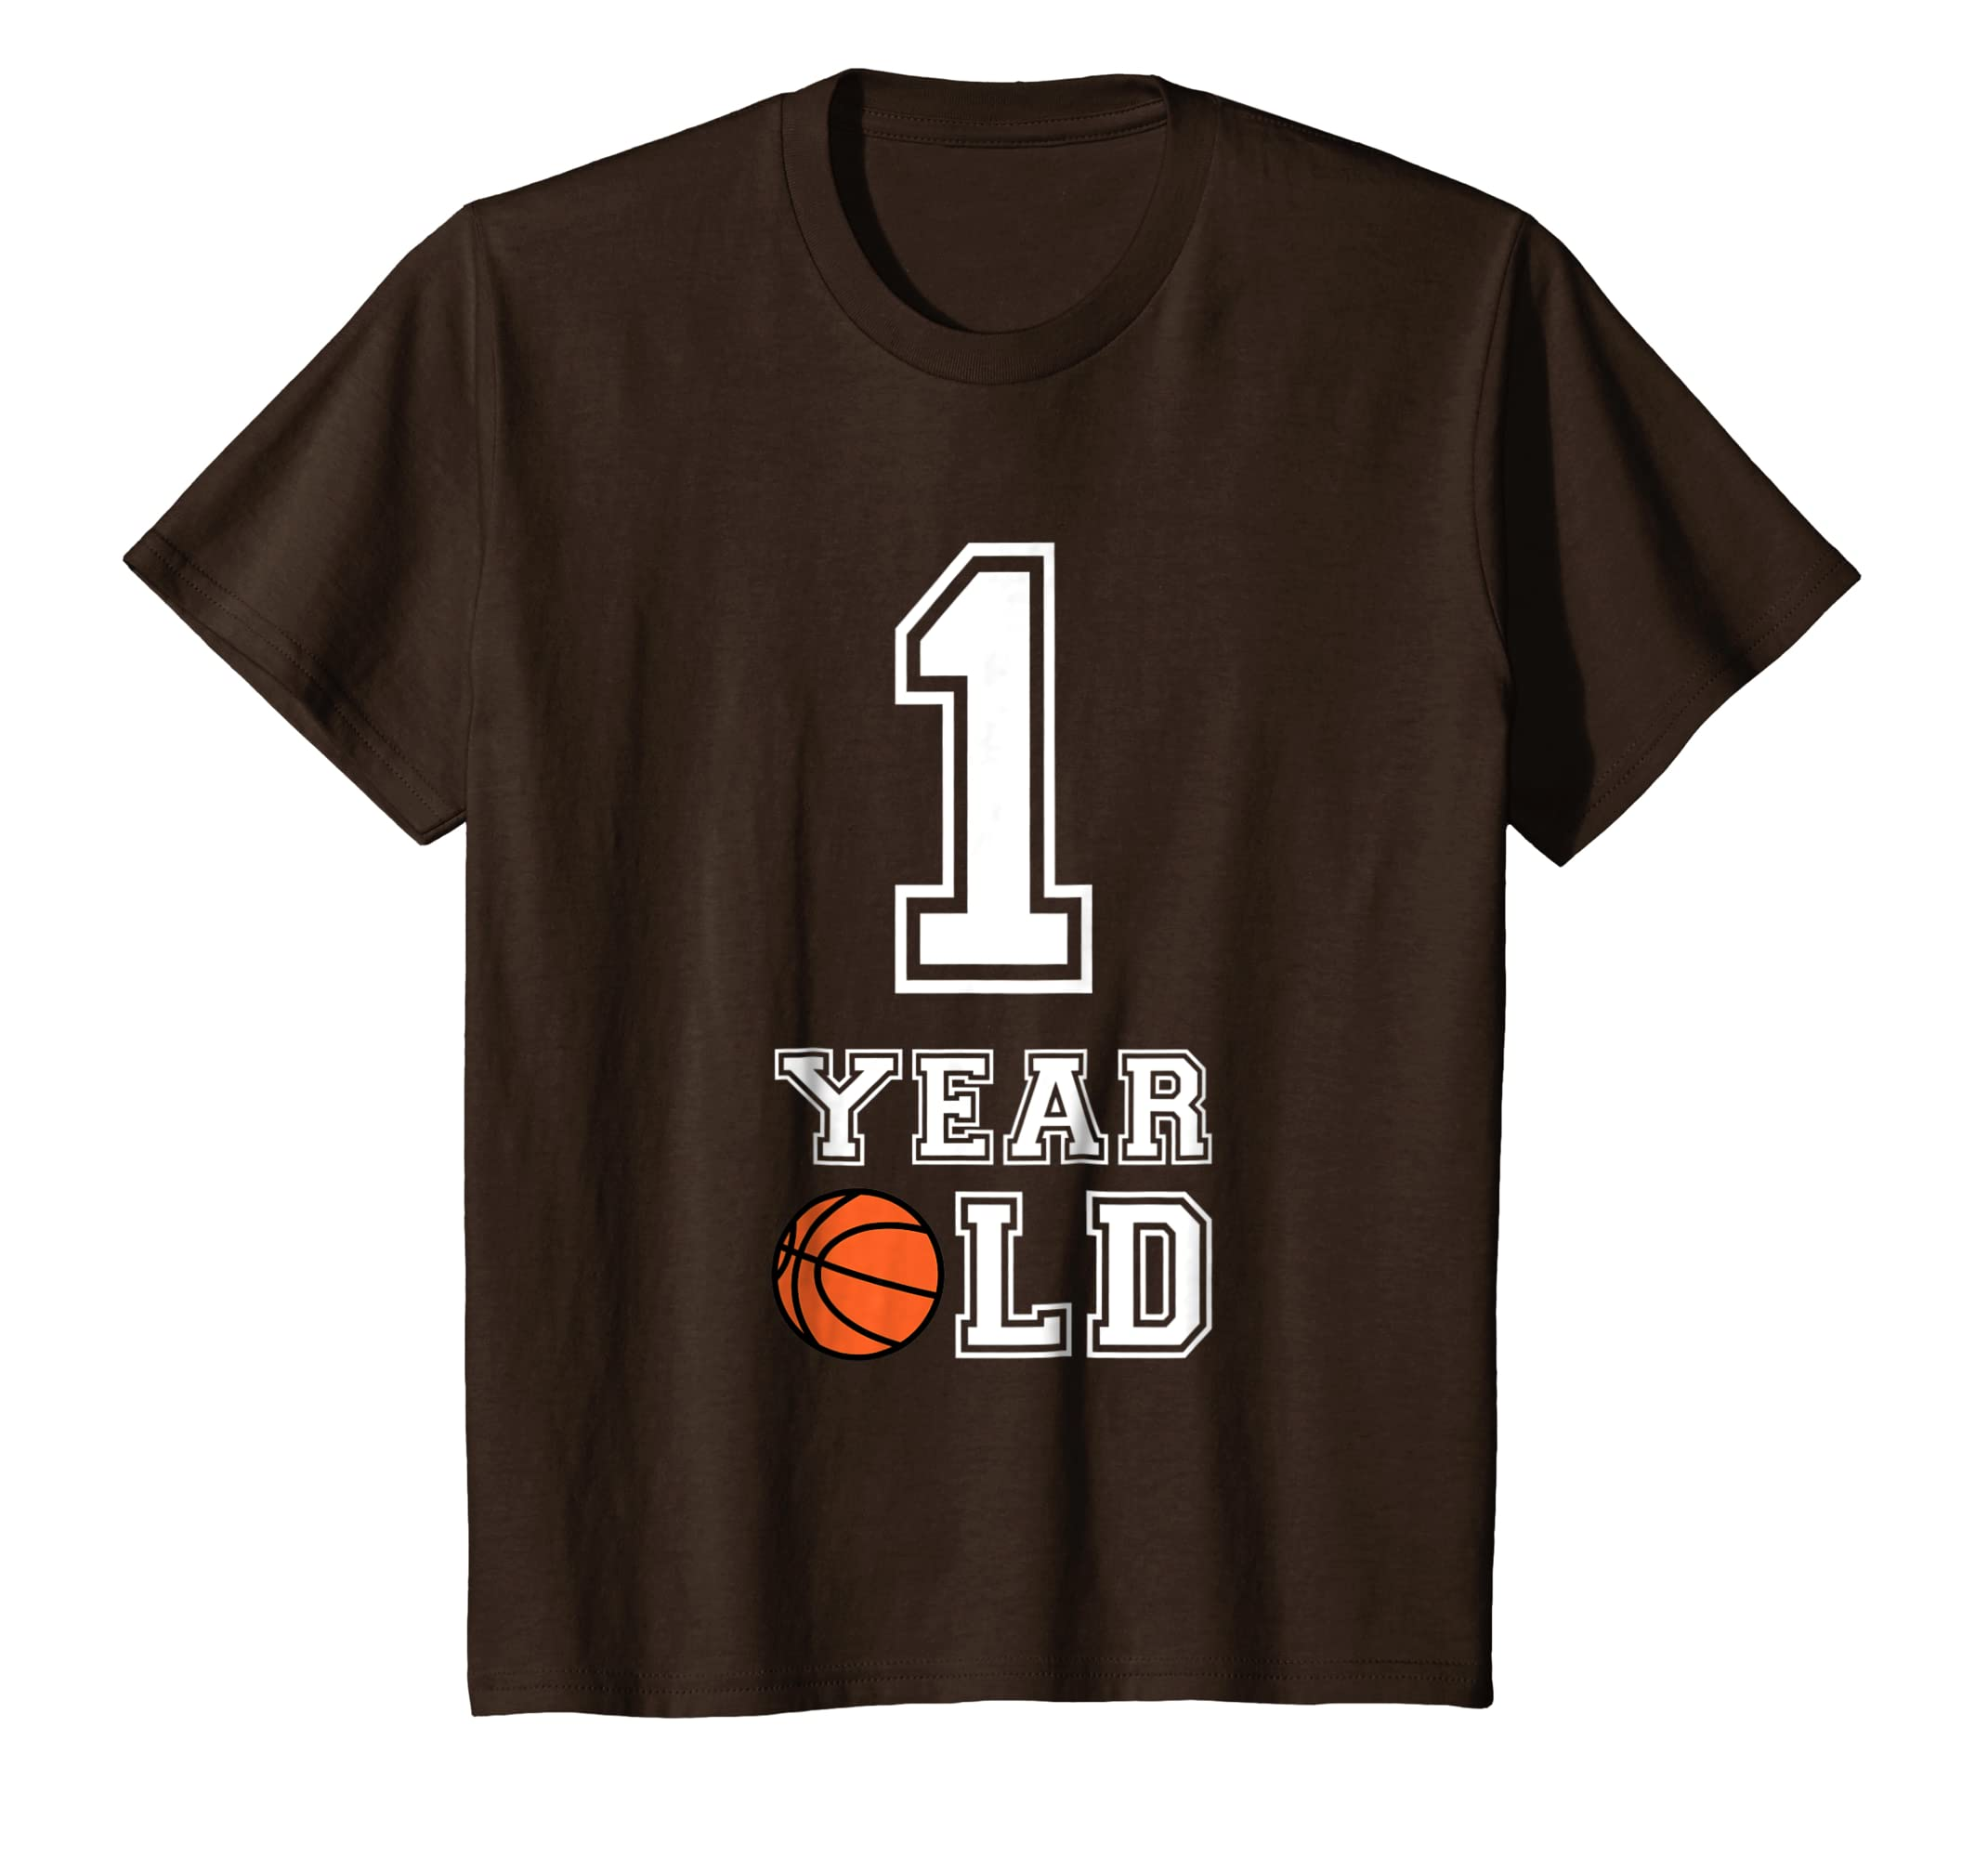 1st Birthday Shirt Boy.Amazon Com Kids 1 Year Old Basketball Birthday Shirt Boys